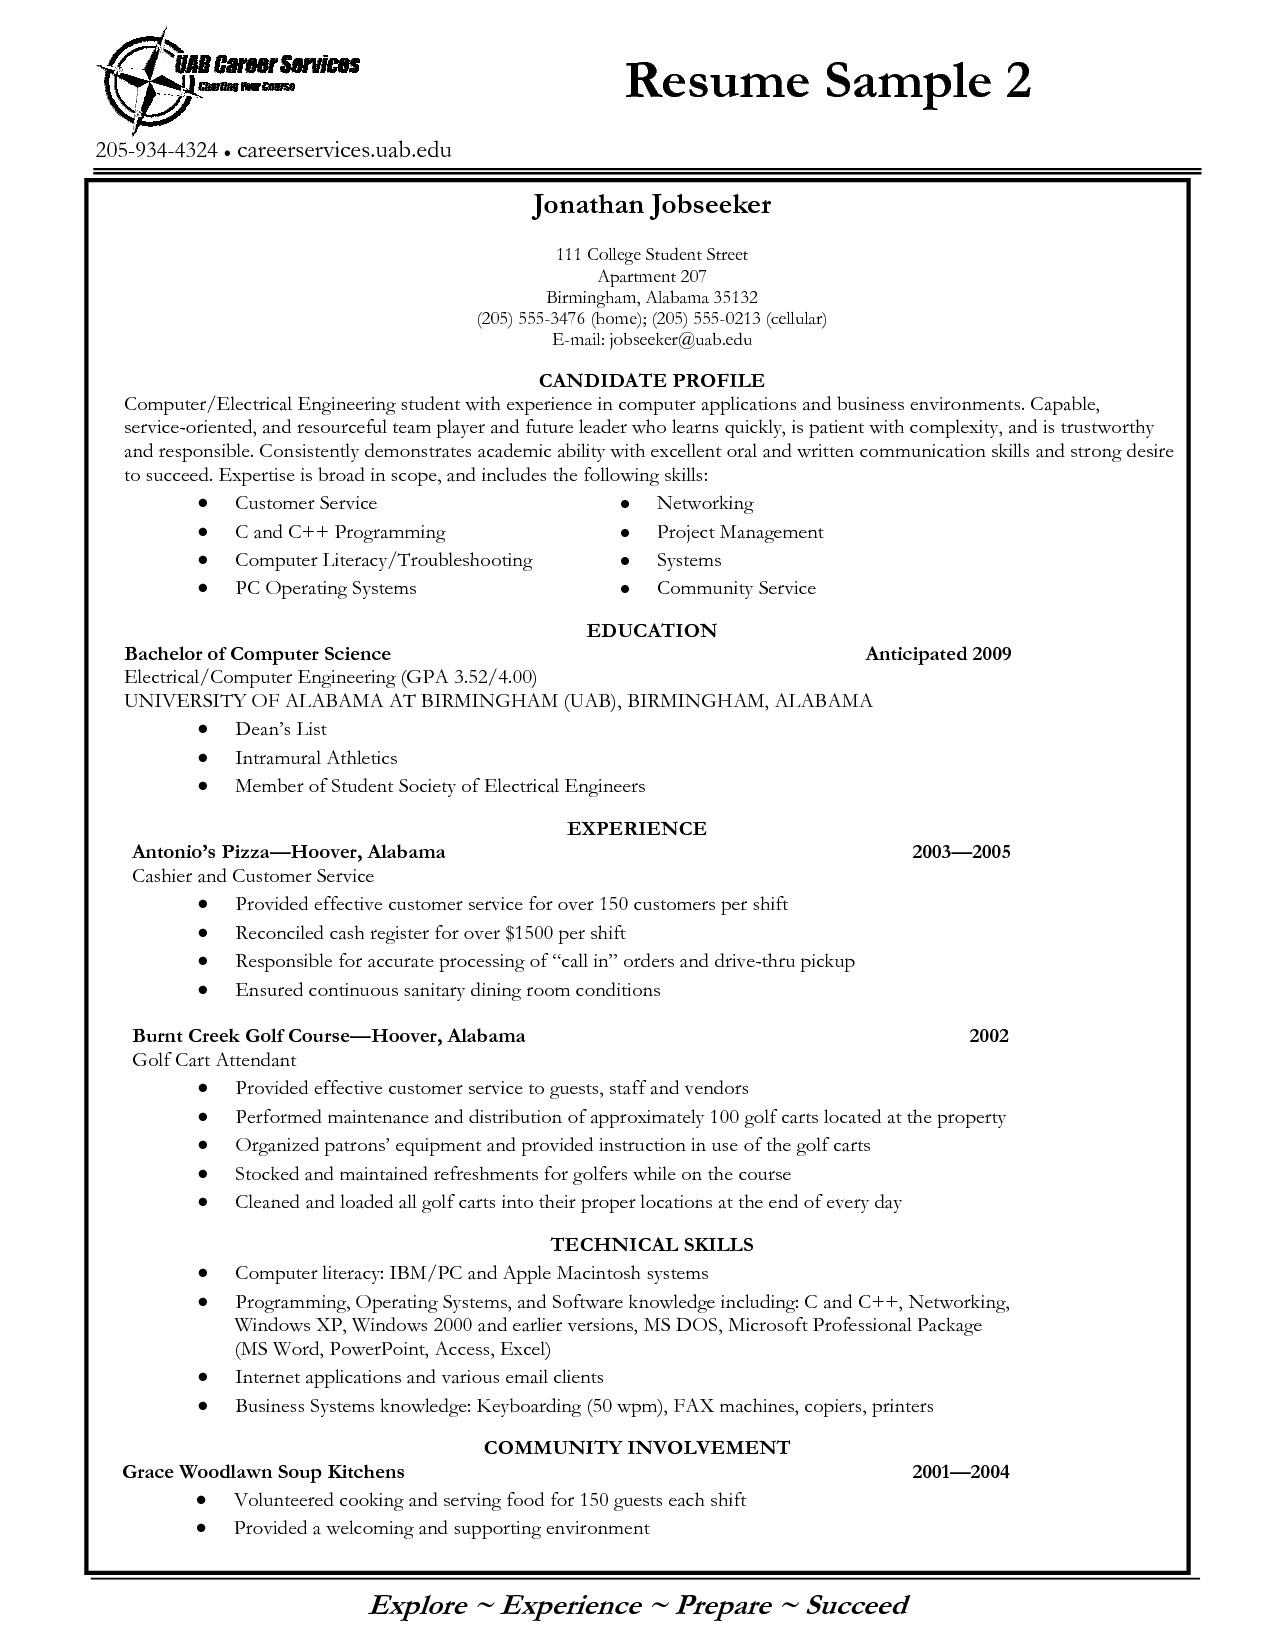 Tags College Graduate Resume No Experience College Graduate Resume .  How To Write Resume With No Experience